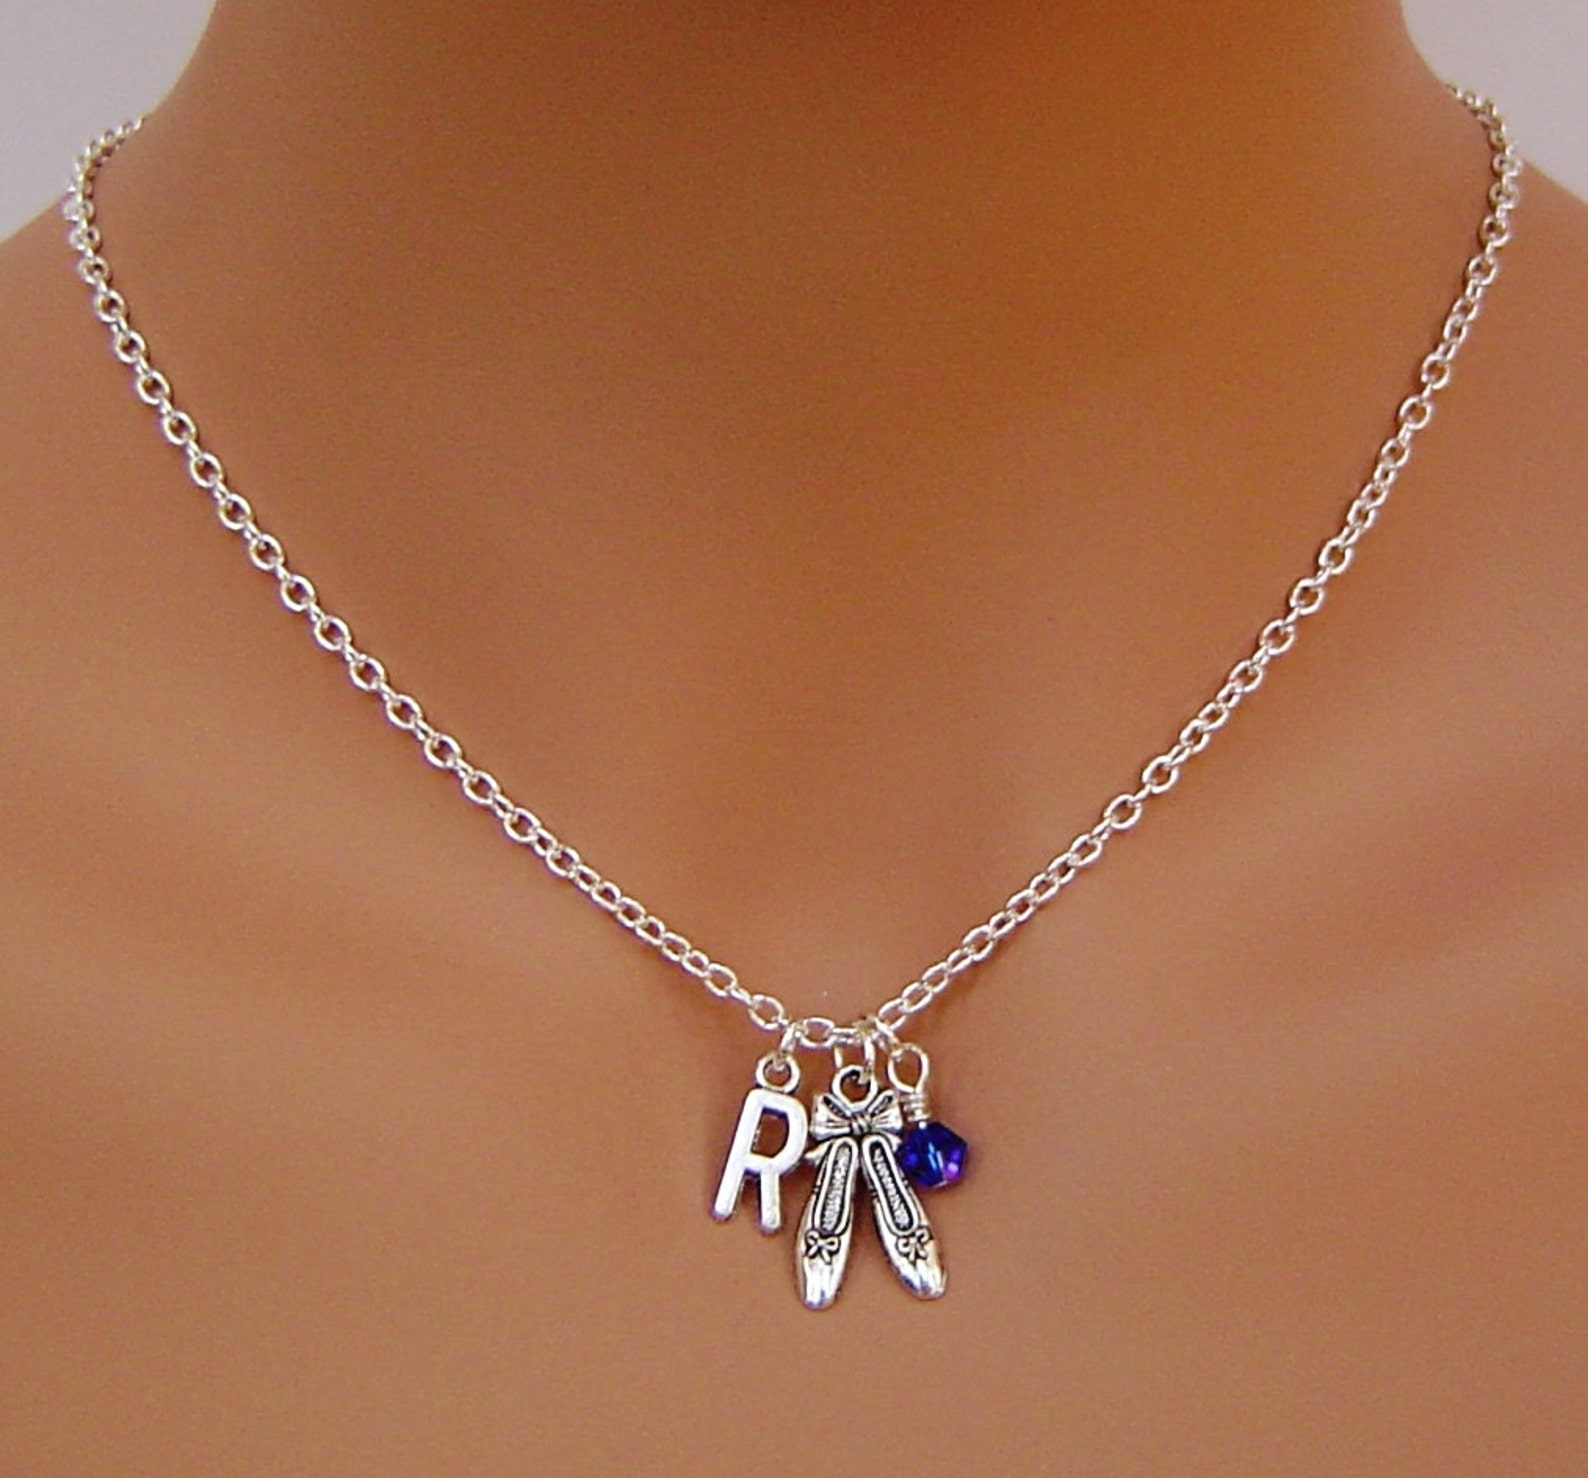 ballet shoes personalized necklace with initial, birthstone, i love ballet, i love dancing. best necklace birthday necklace